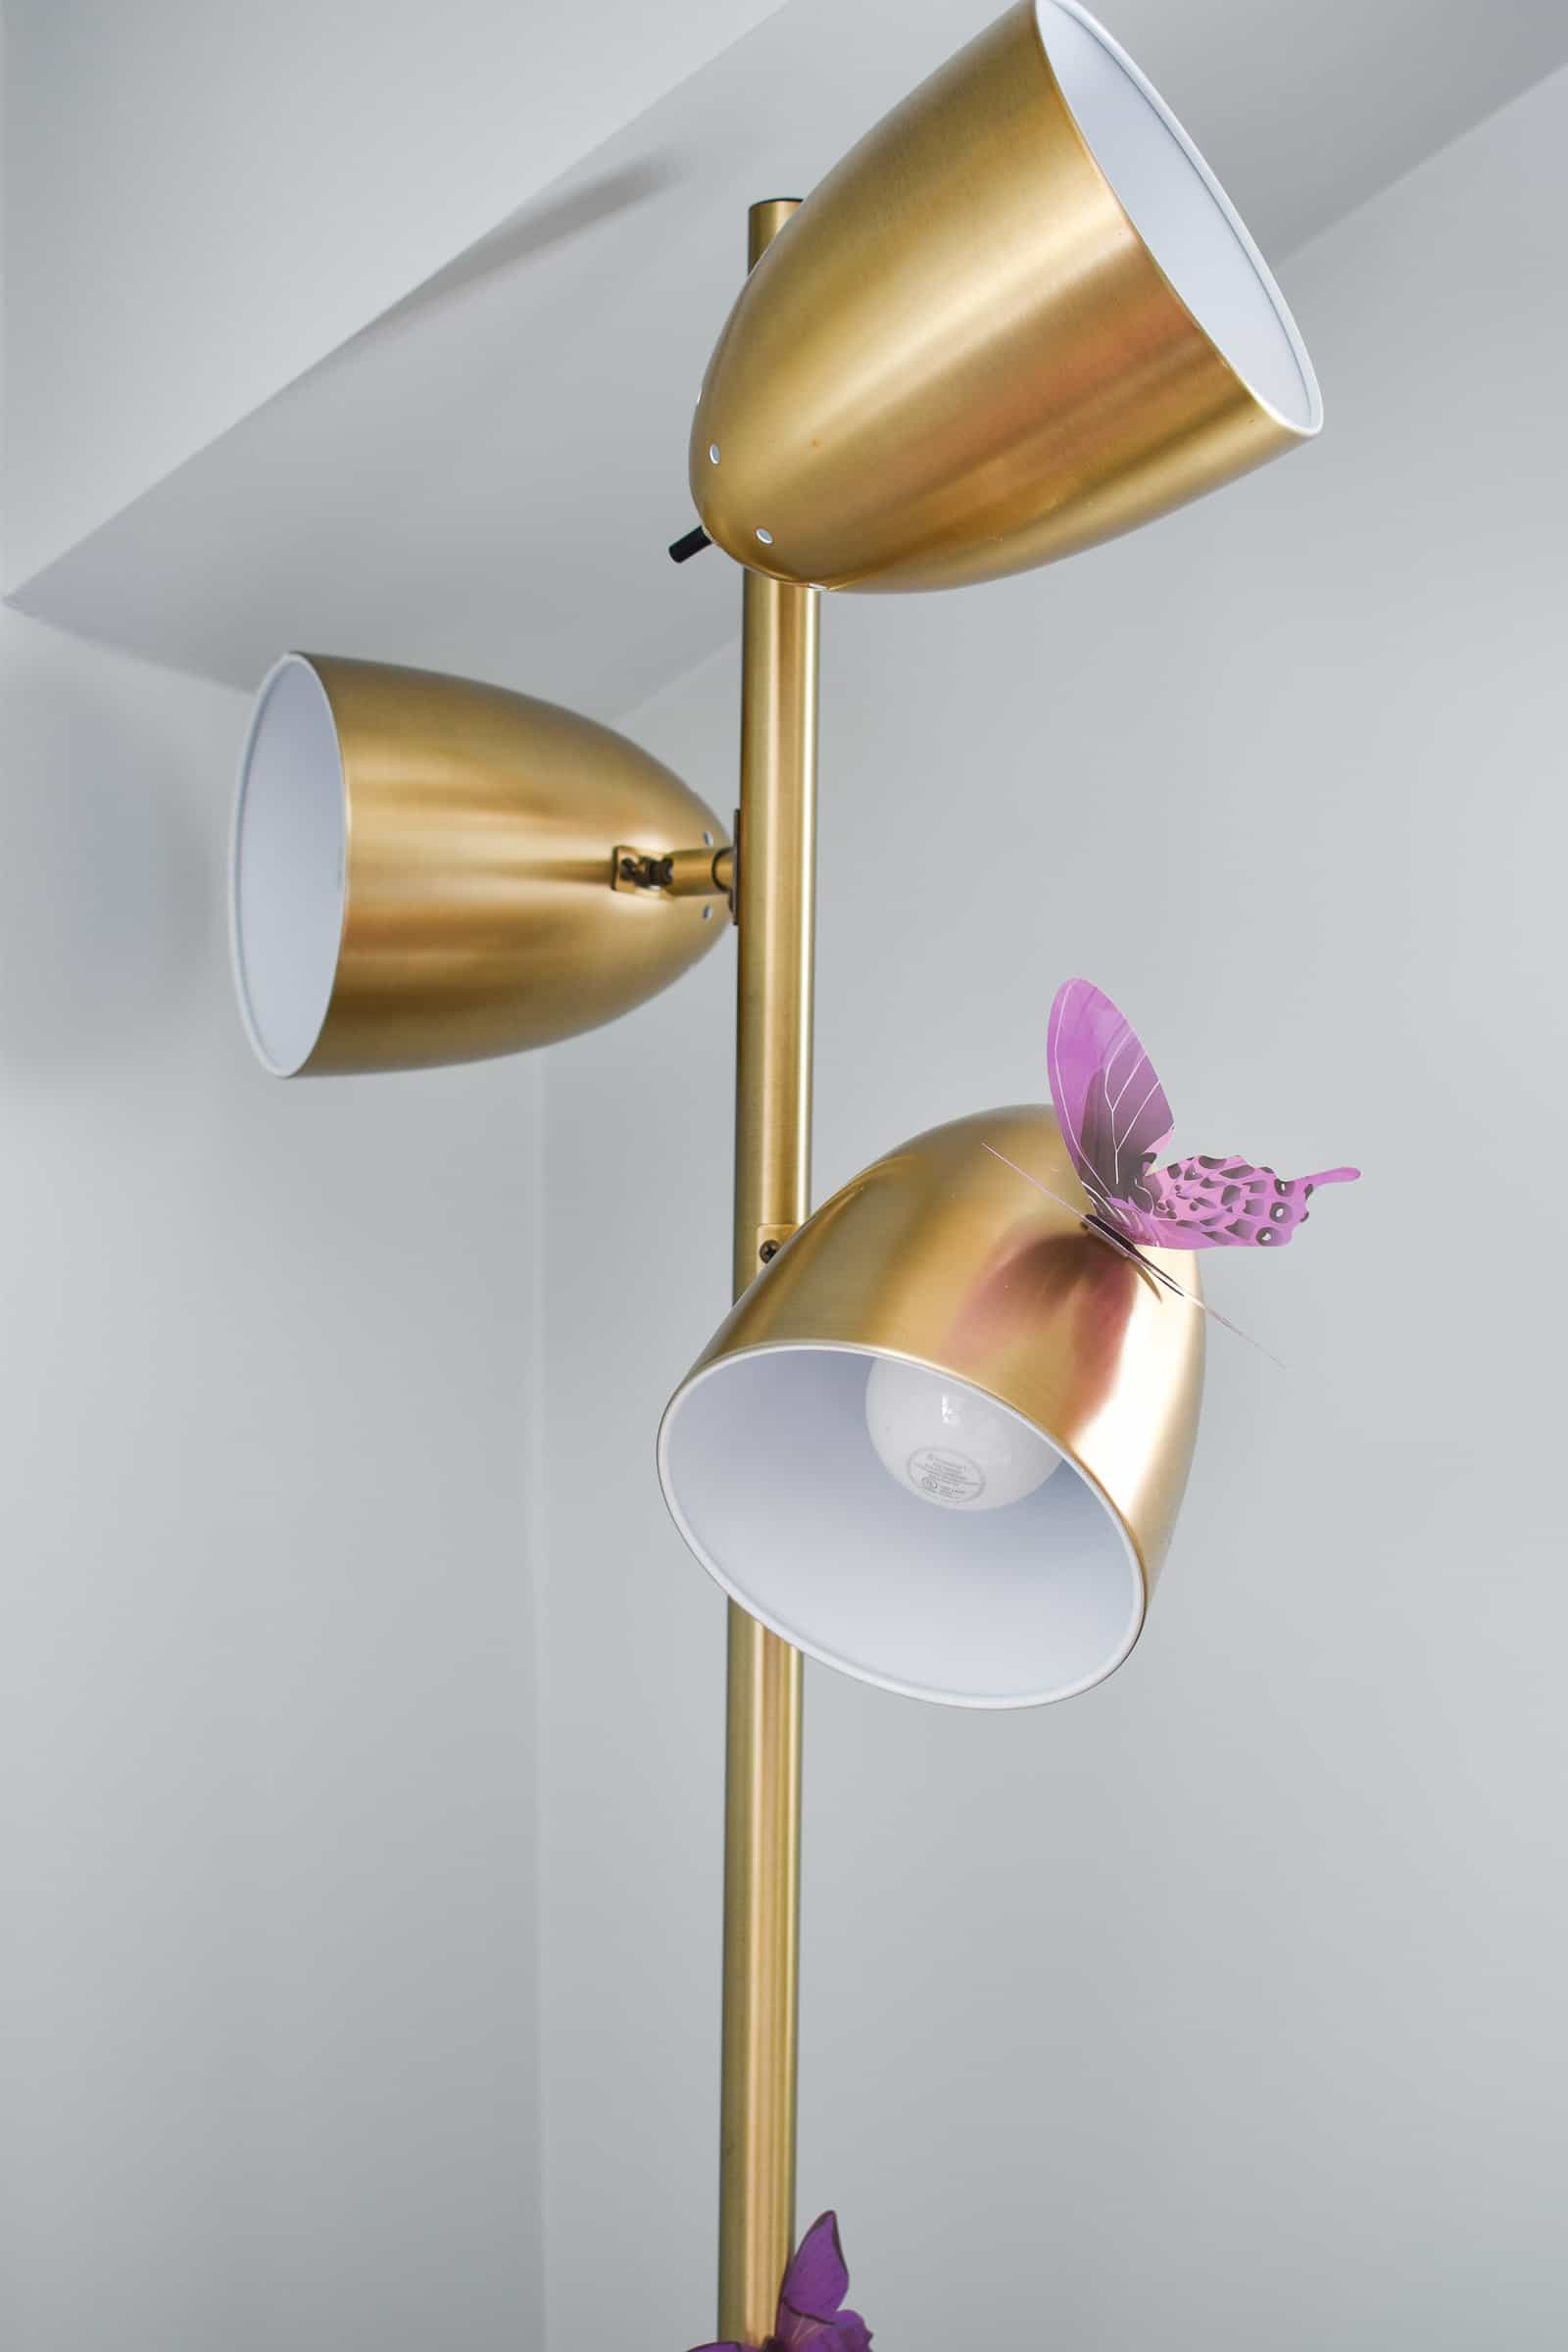 butterfly on a lamp